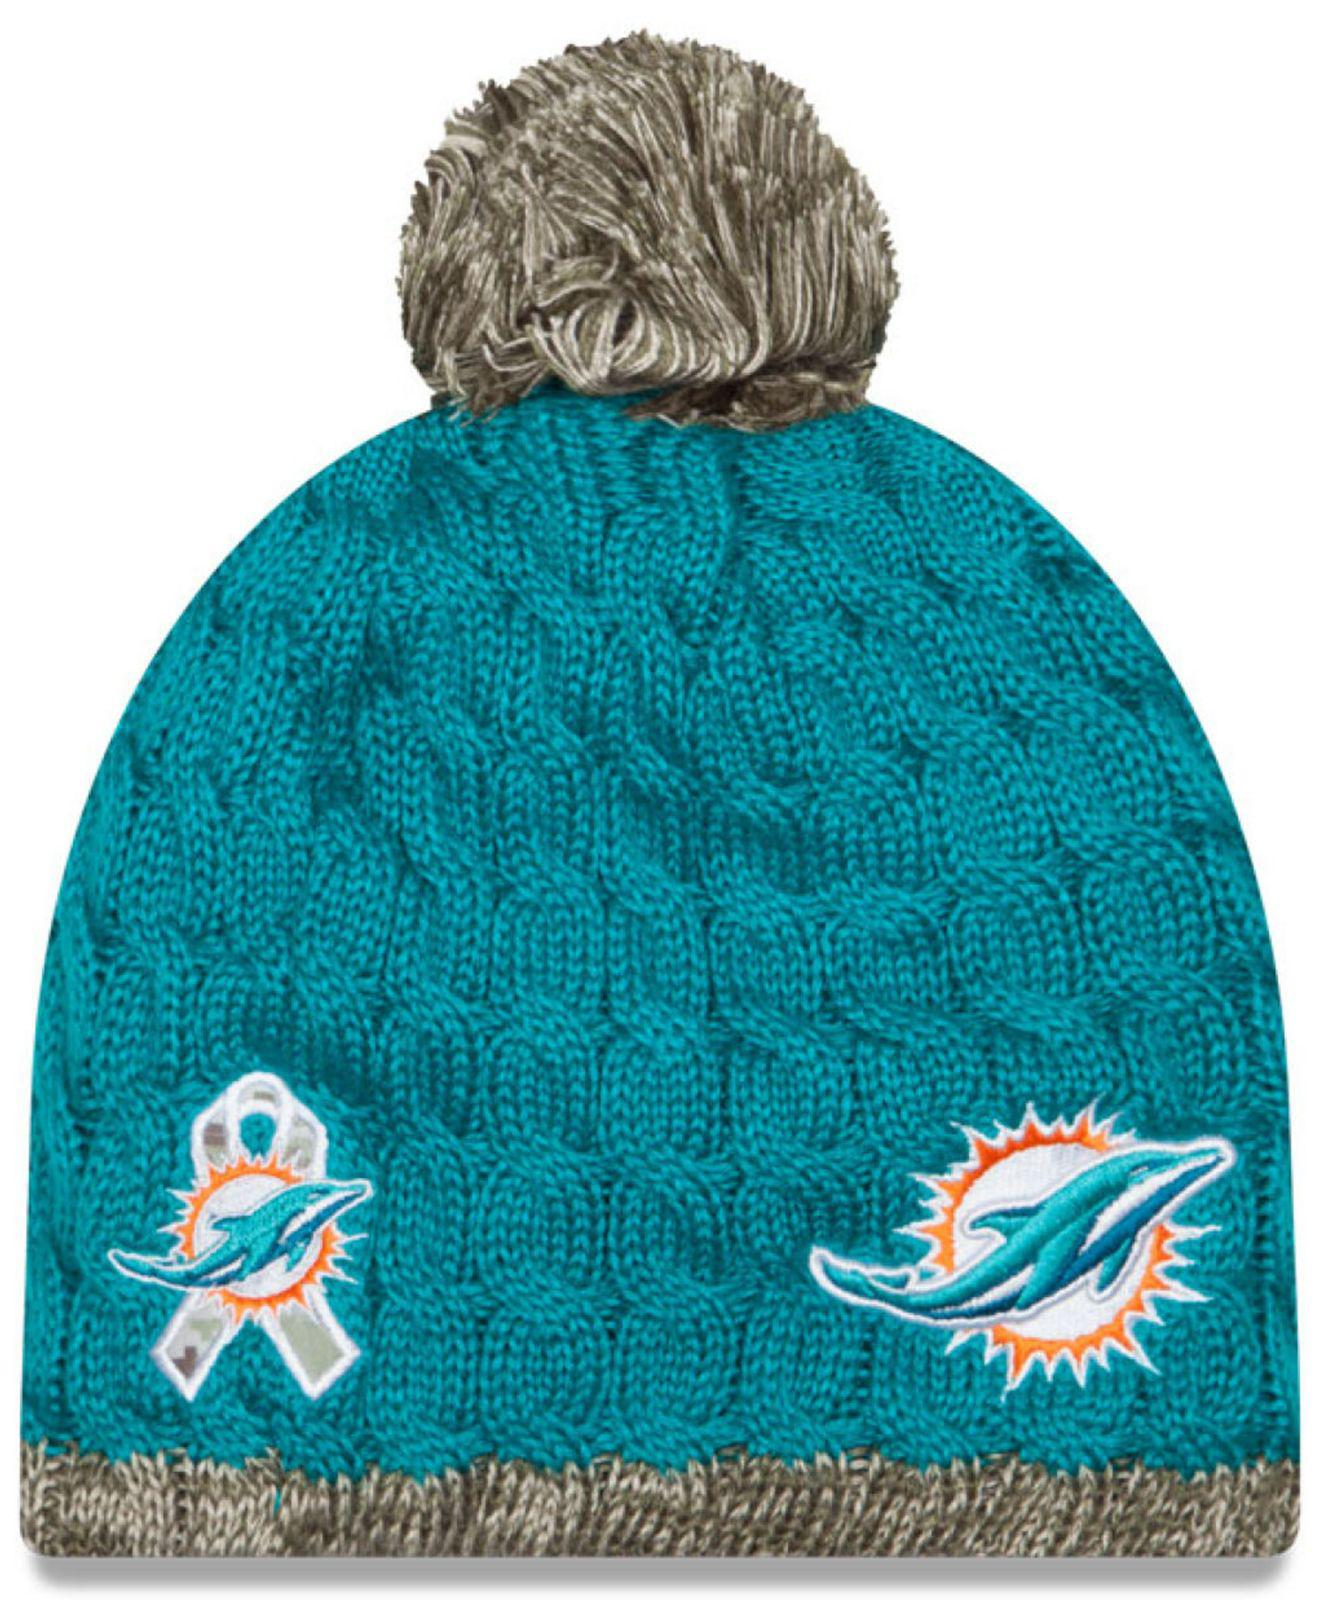 24fc69c4 germany nfl dolphins knit hat download f11c1 86695